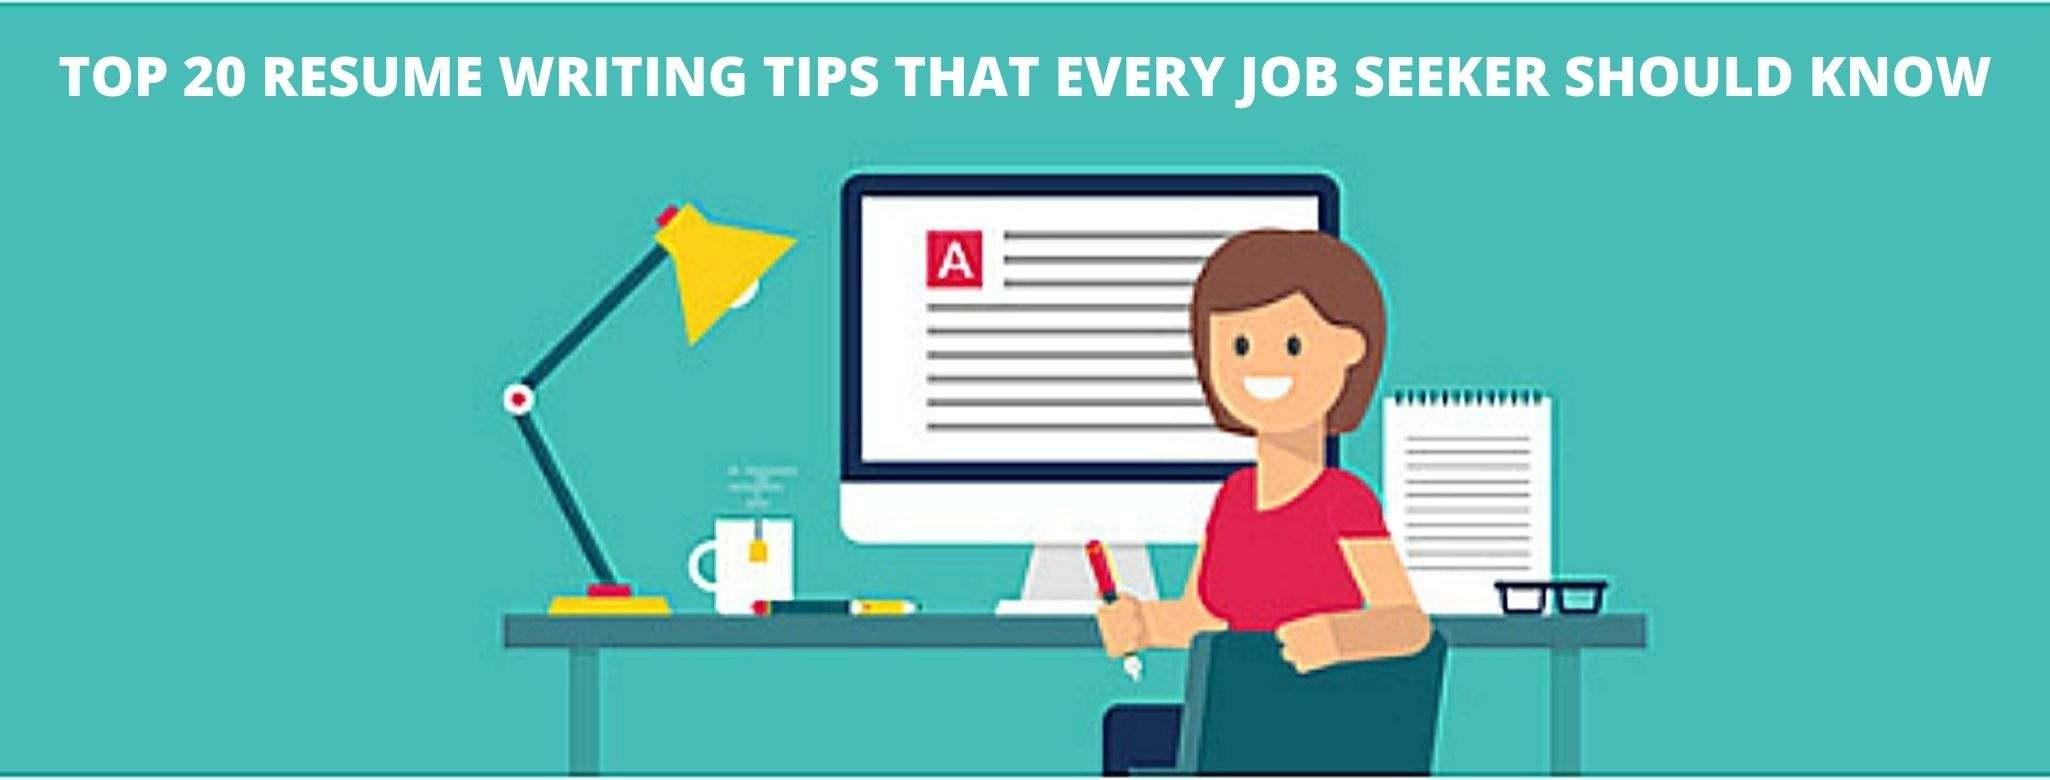 The image shows top 20 resume writing tips